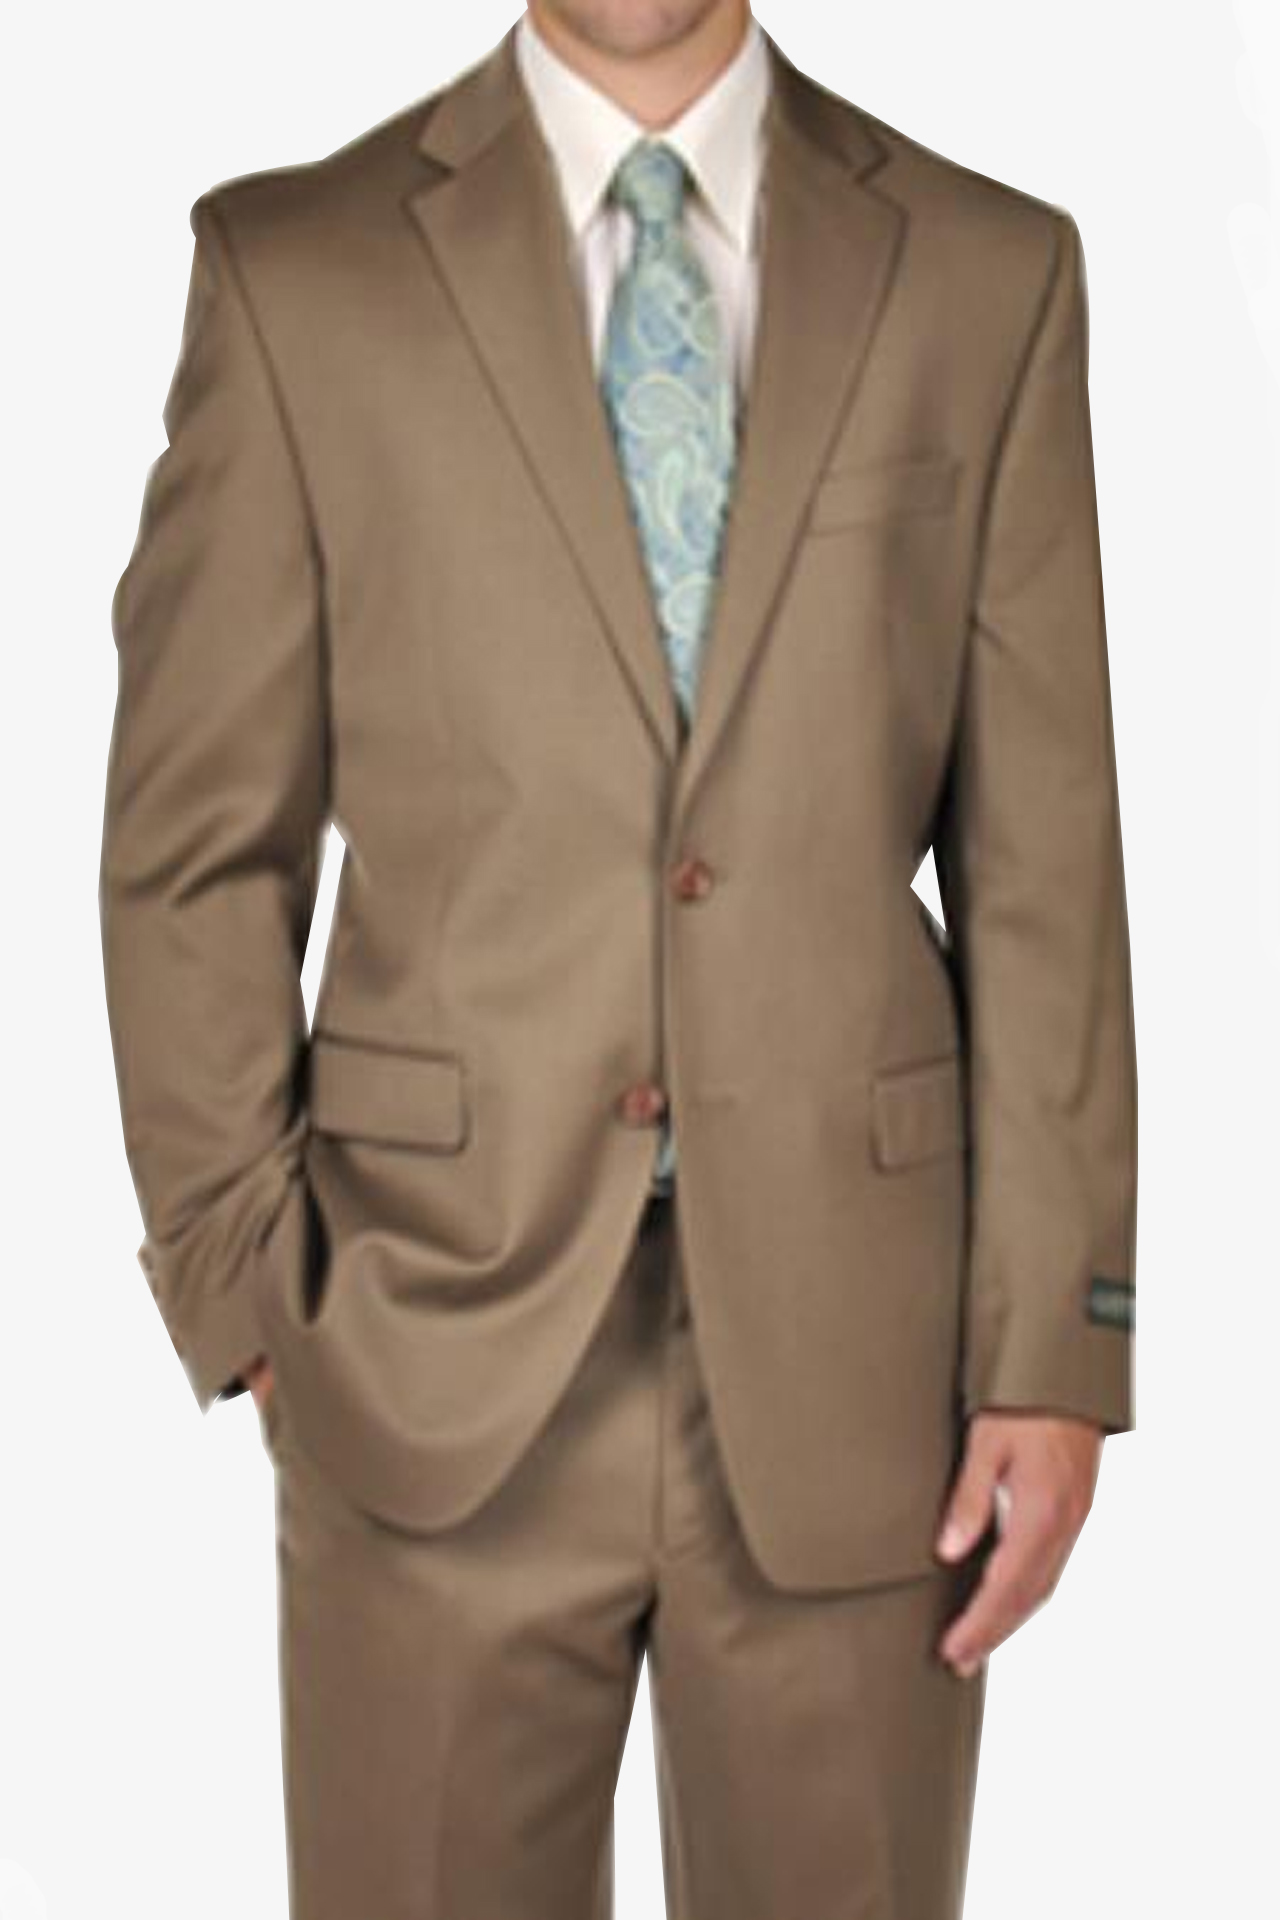 Ralph Lauren Tan Wedding Beige Suit